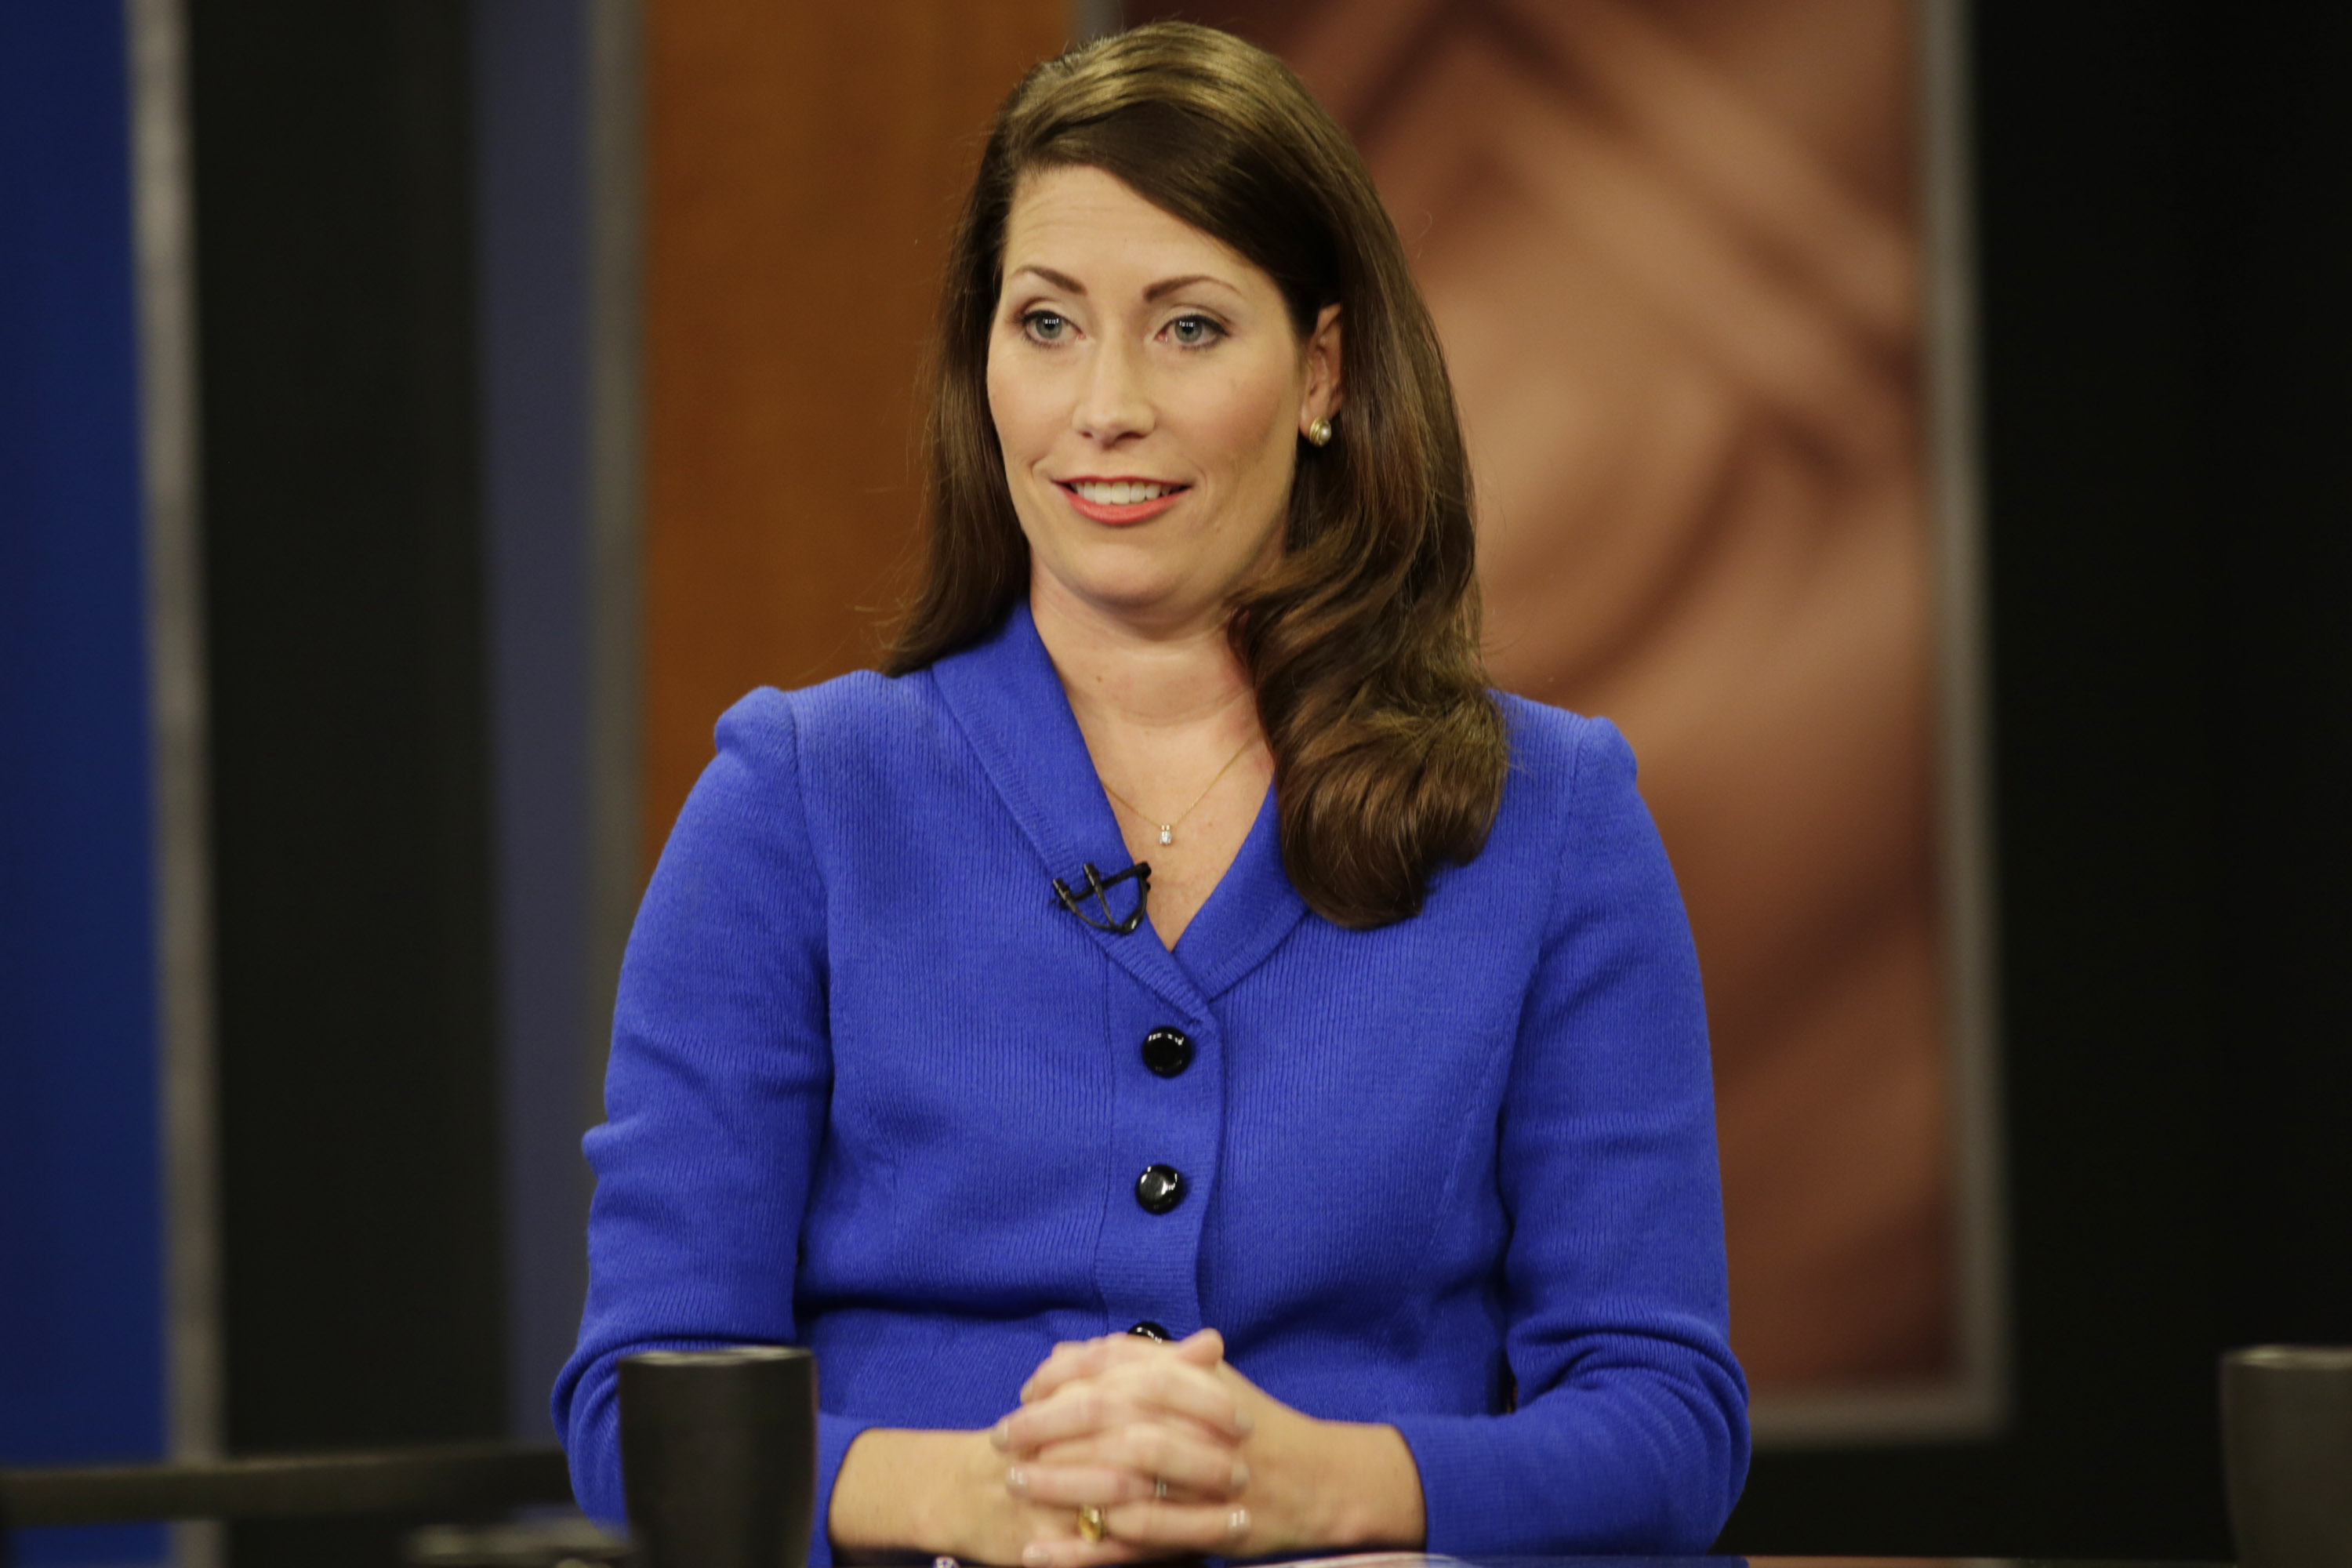 Kentucky Secretary of State Alison Lundergan Grimes in Lexington, Ky., on Monday, Oct. 13, 2014.